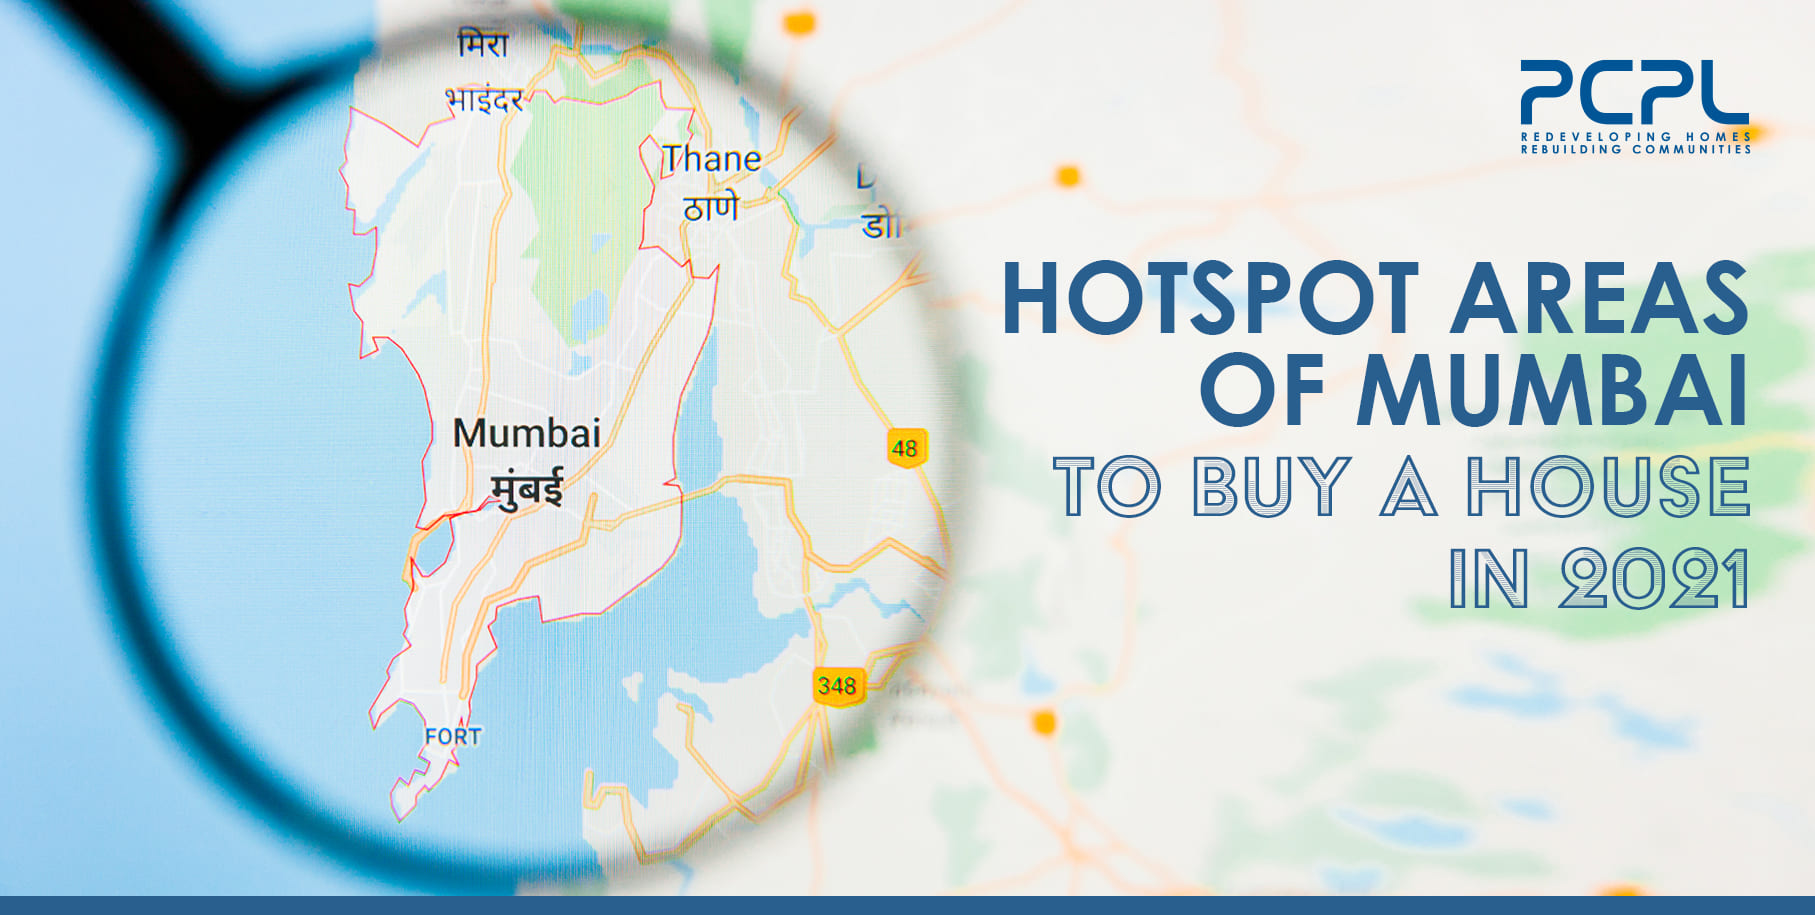 Hotspot Areas of Mumbai to Buy a House in 2021